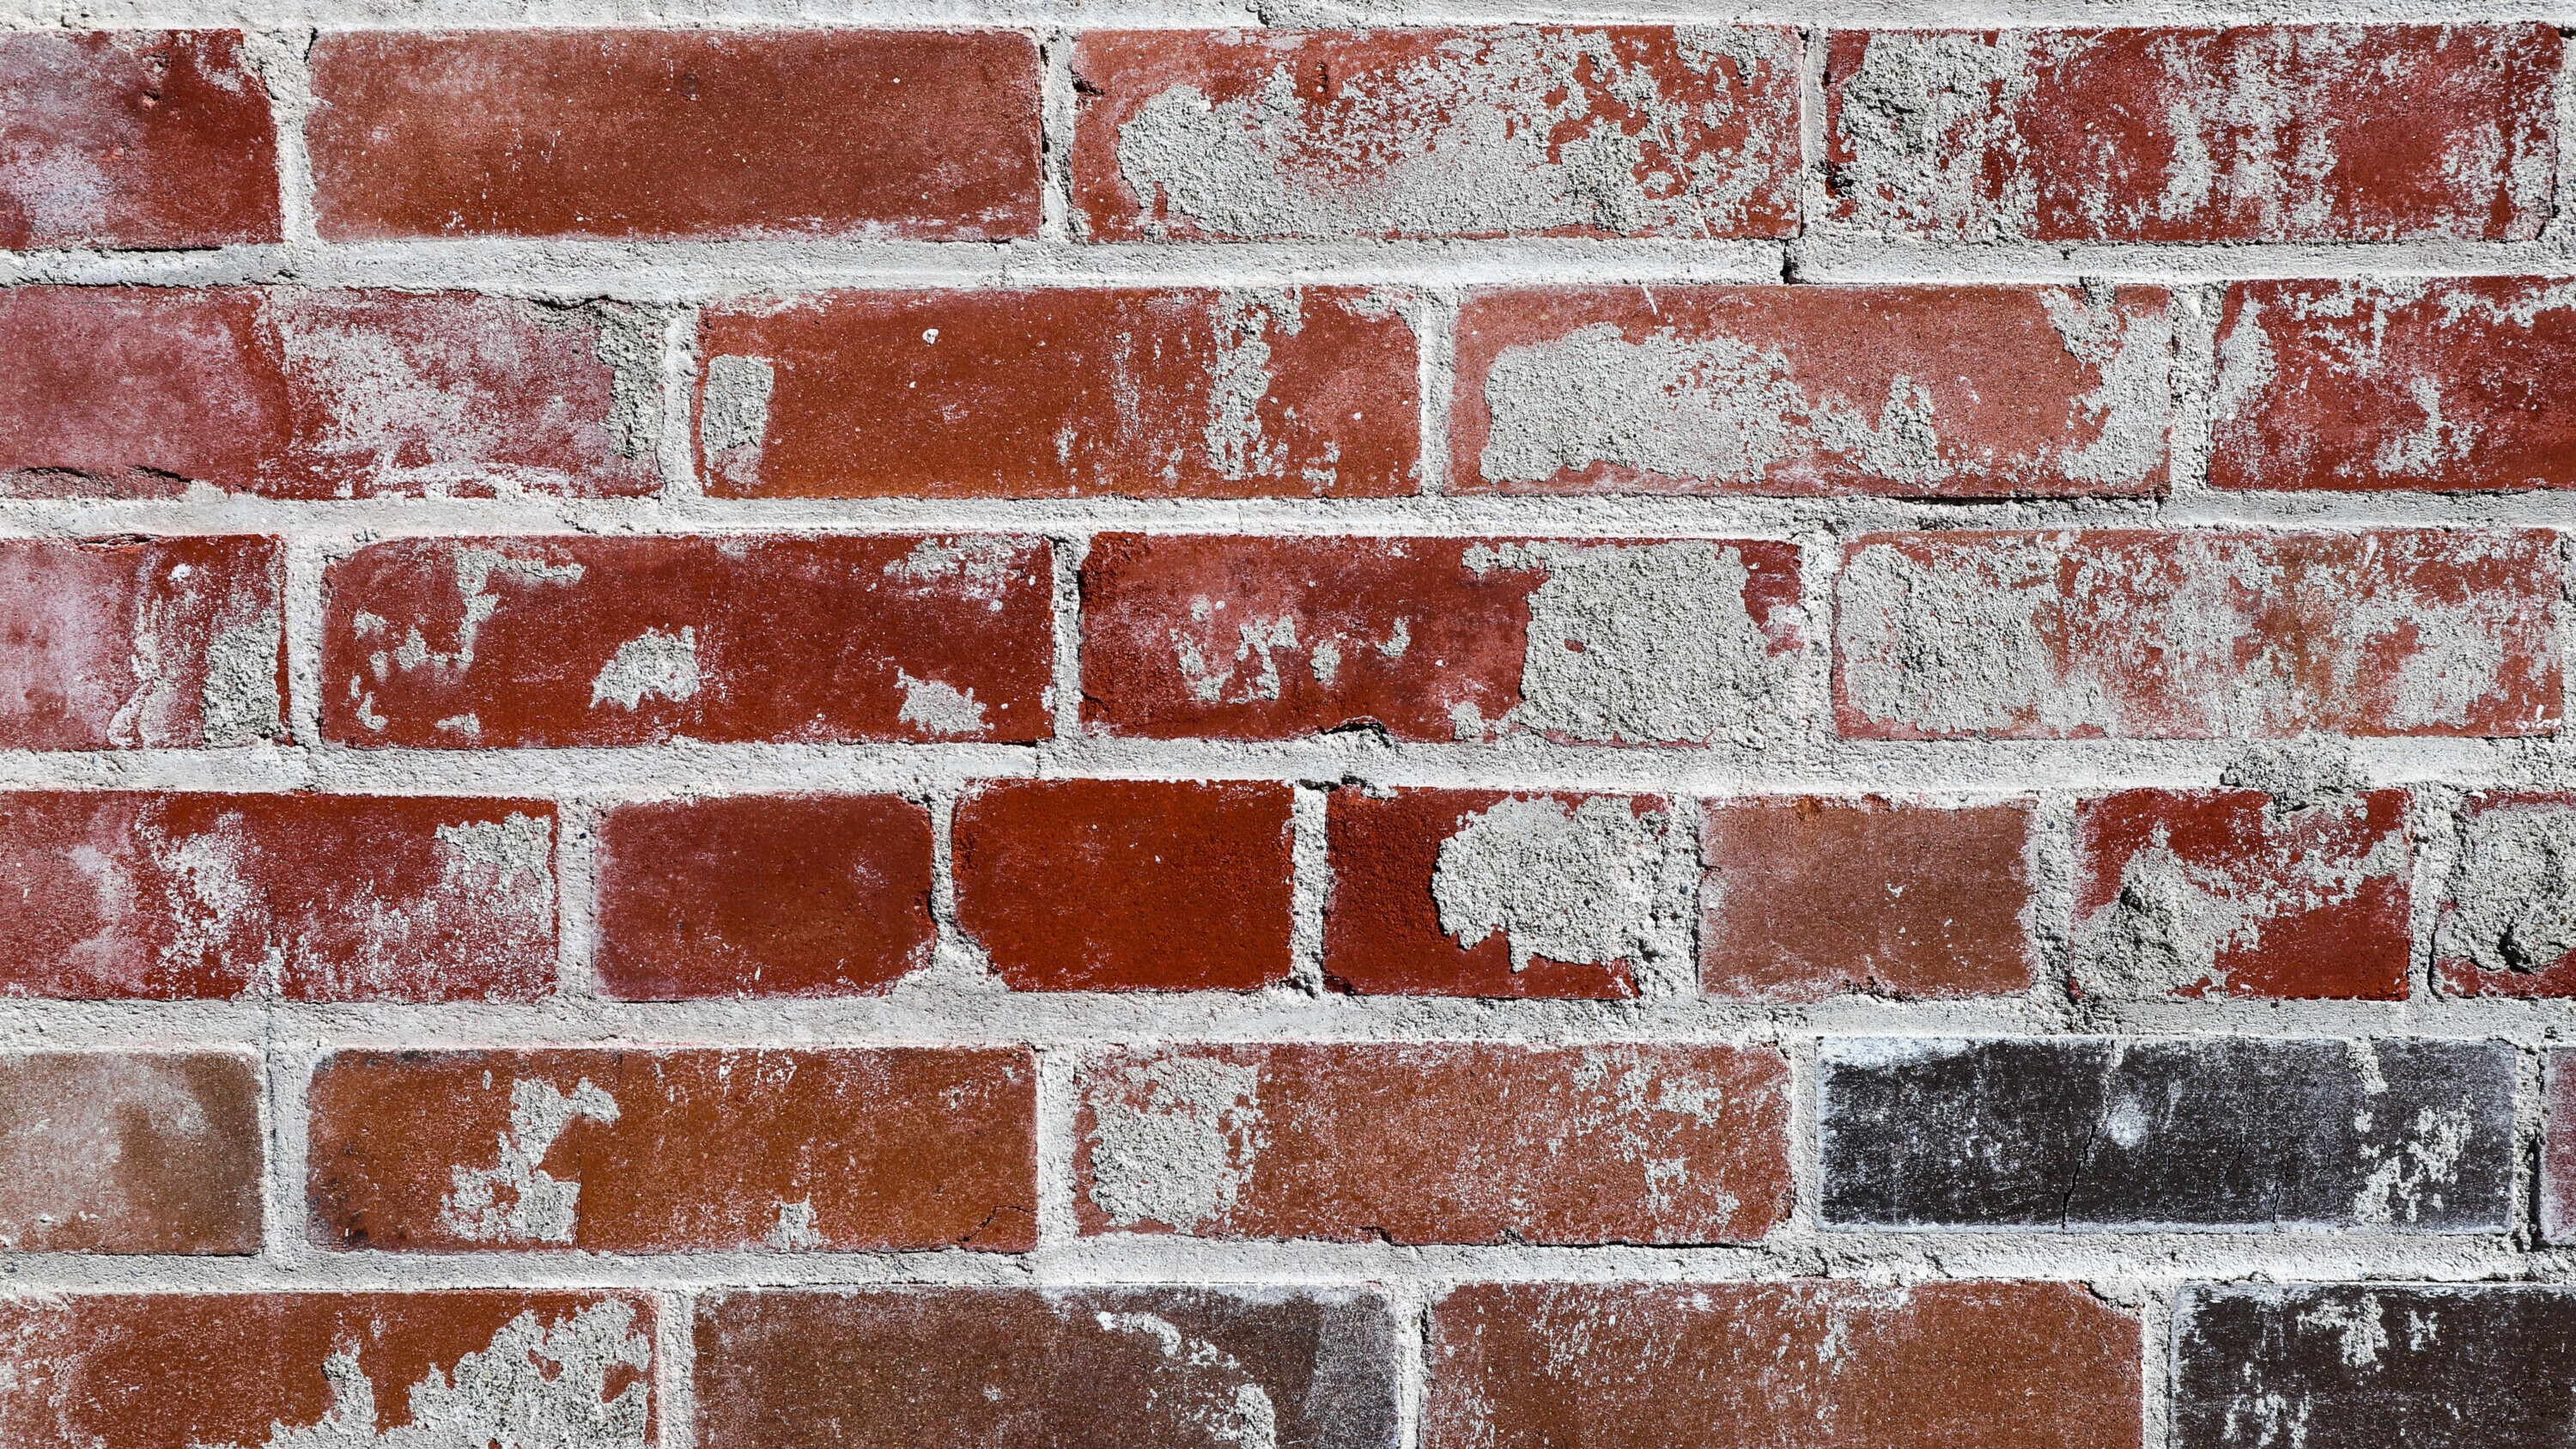 tuckpointing and repointing